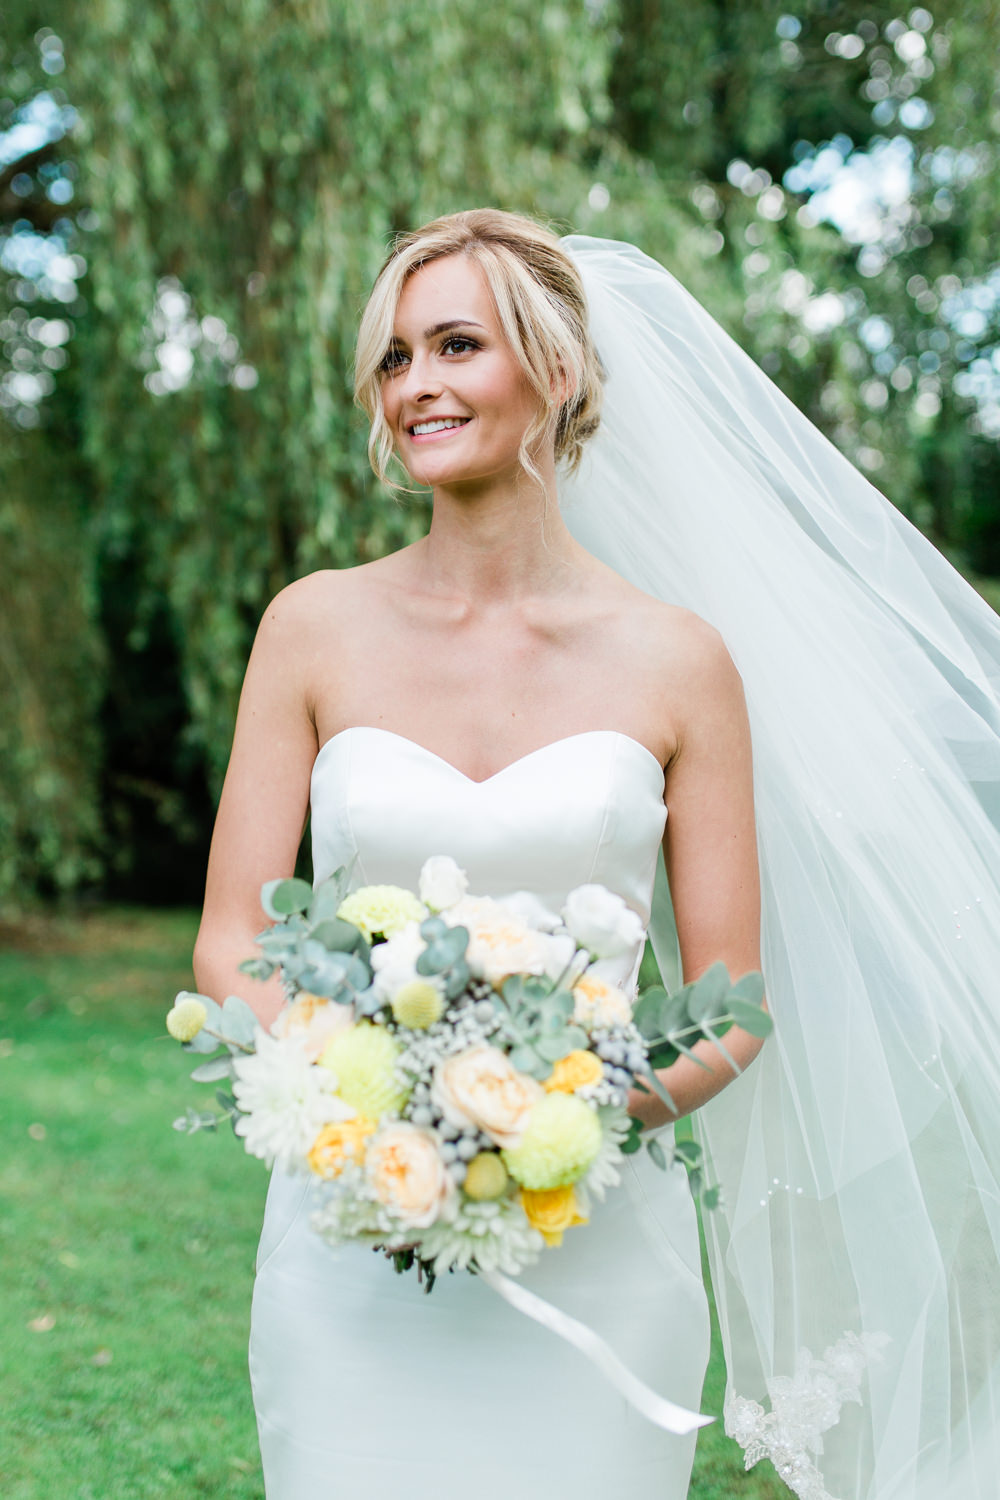 Bride Bridal Sweetheart Neckline Fit And Flare Fishtail Dress Gown Veil Bouquet Creative Summer Wedding Gemma Giorgio Photography